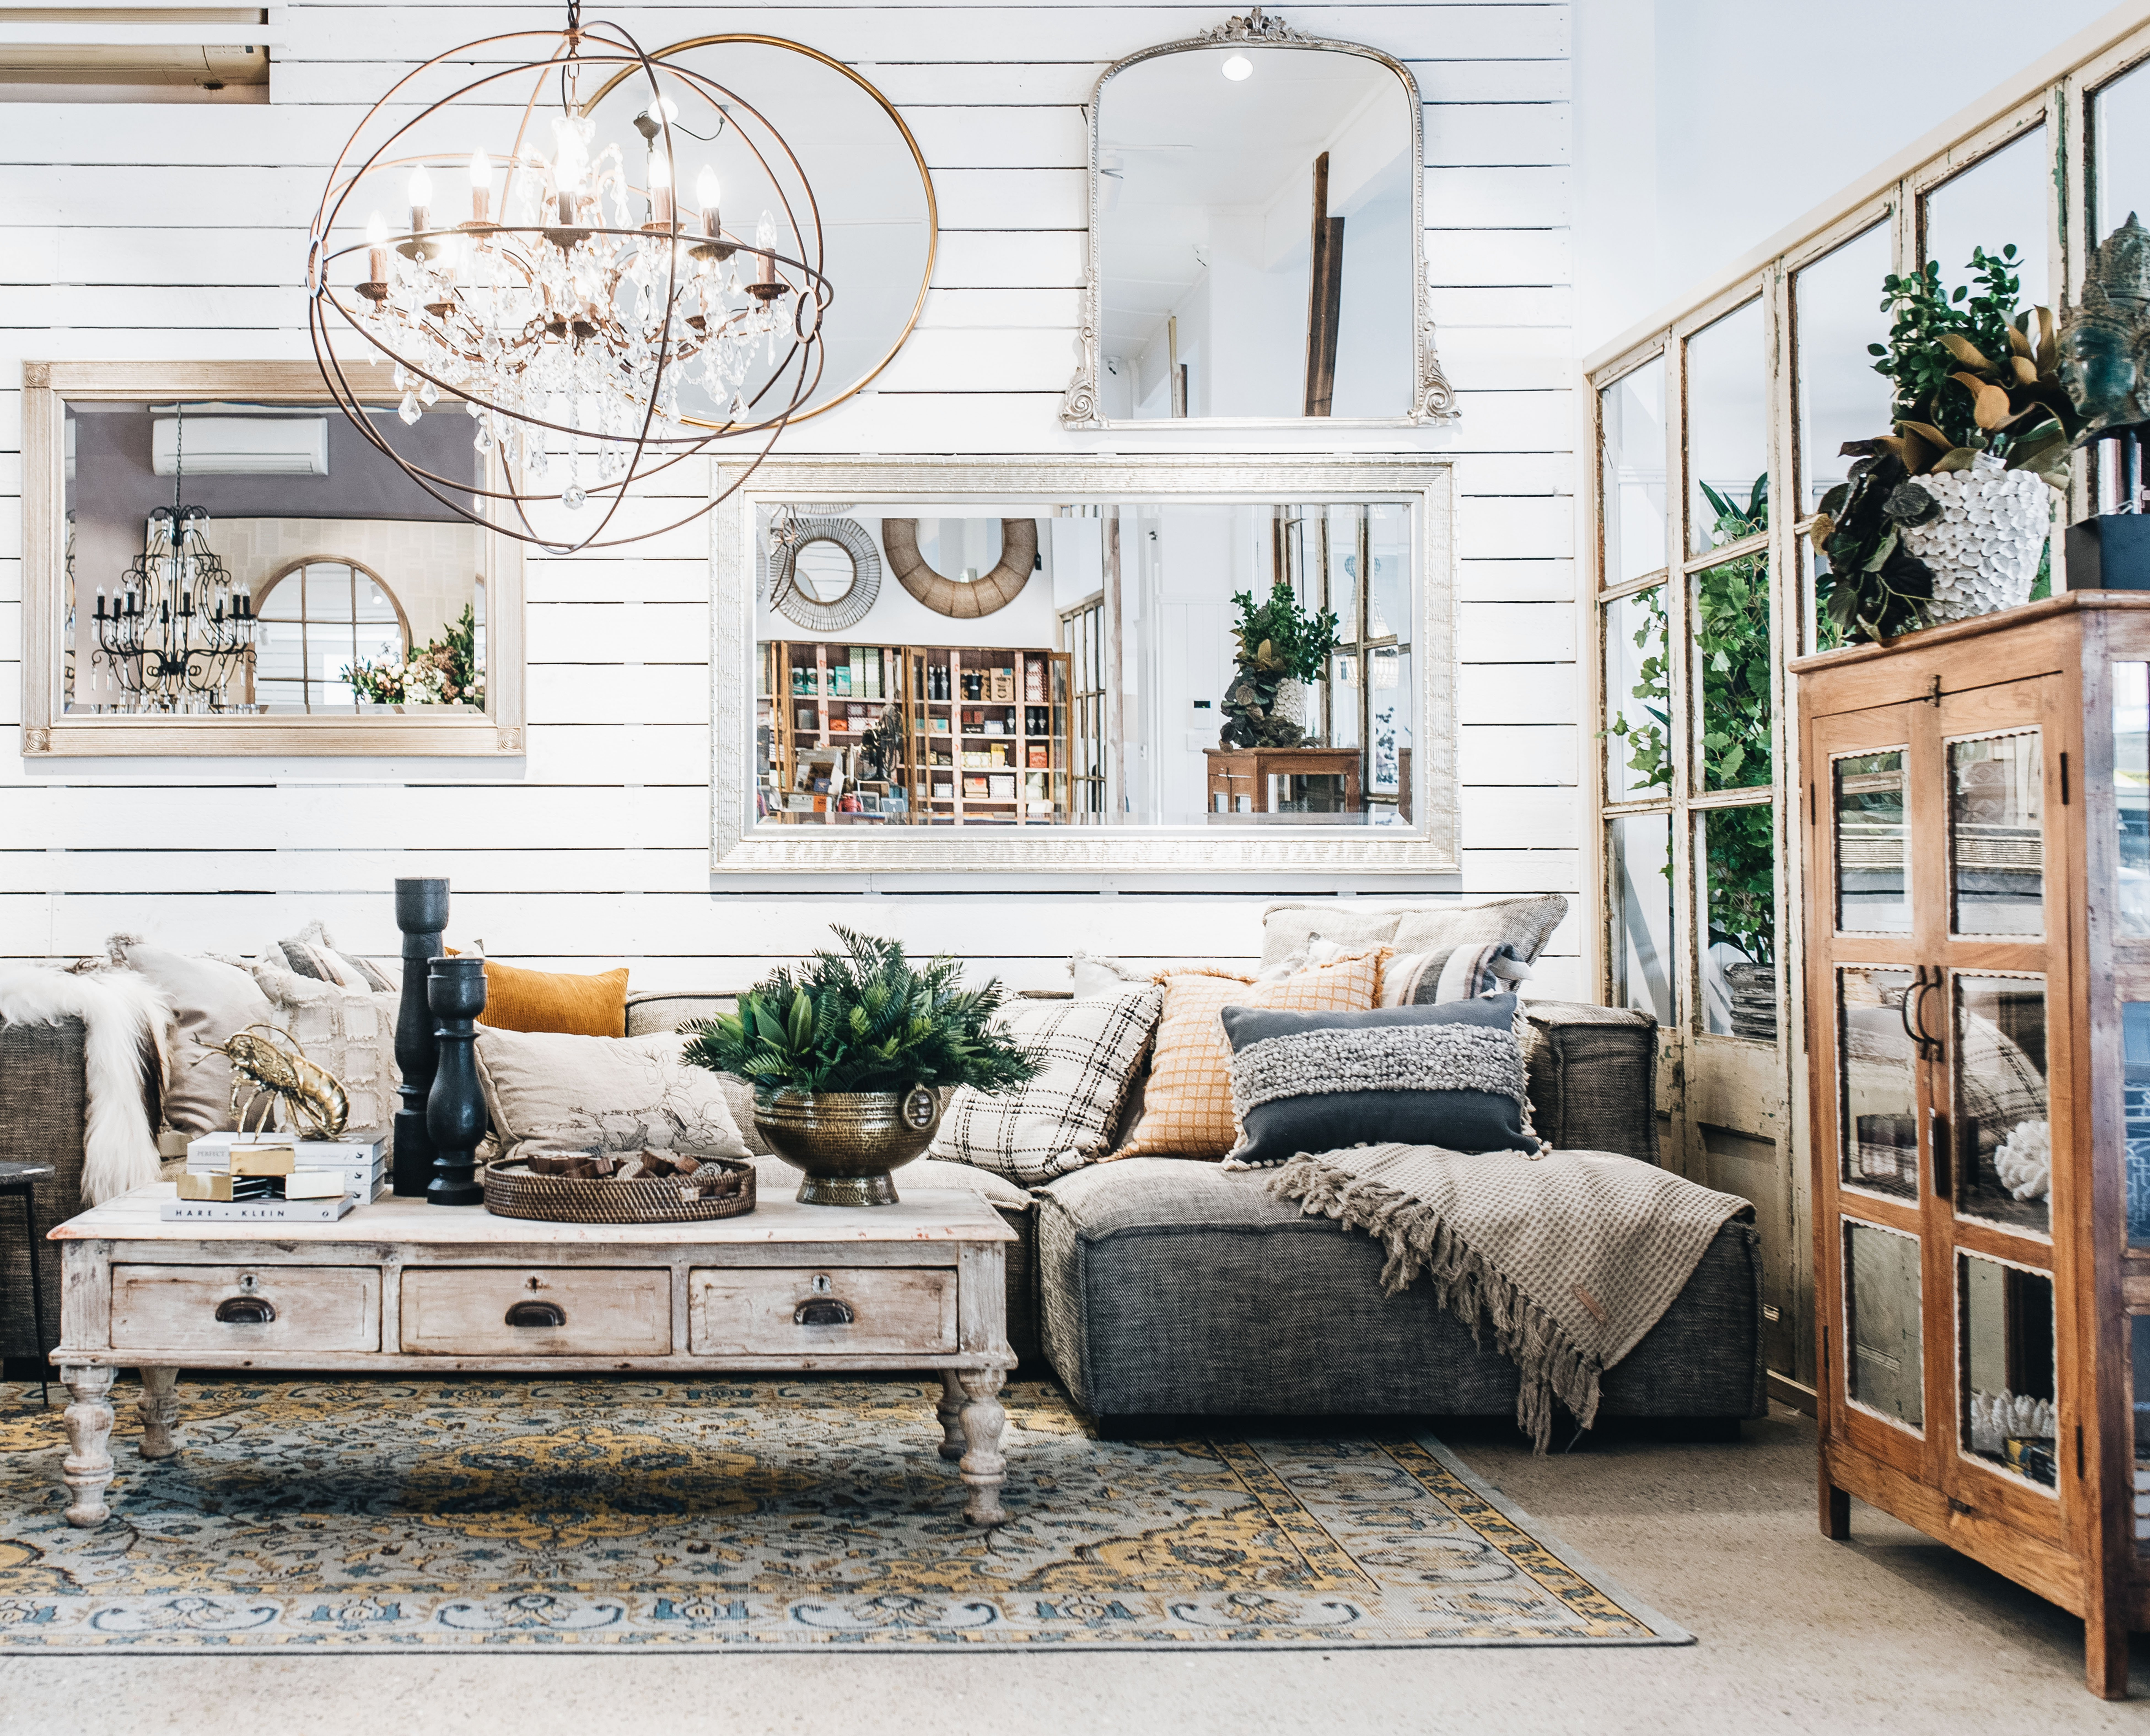 Australia's best gifts and homewares store